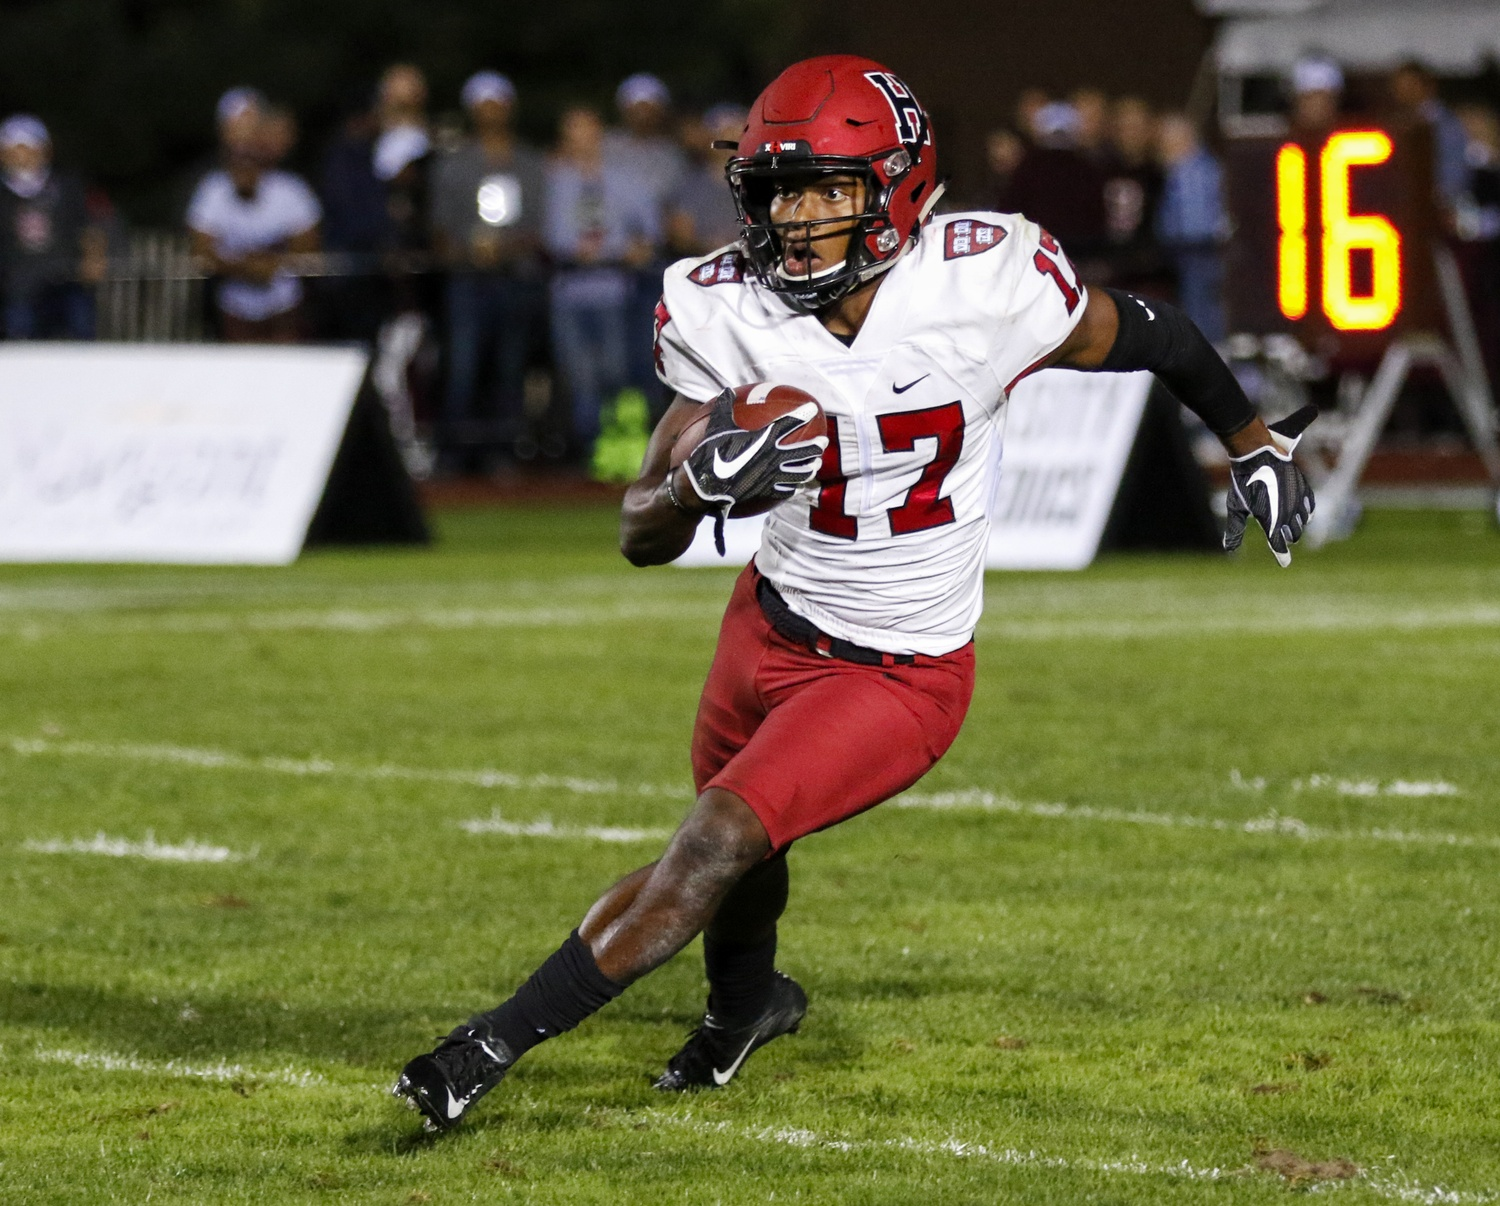 Junior Justice-Shelton Mosley has the fourth highest number of career receptions of any Harvard player ever, with 137.